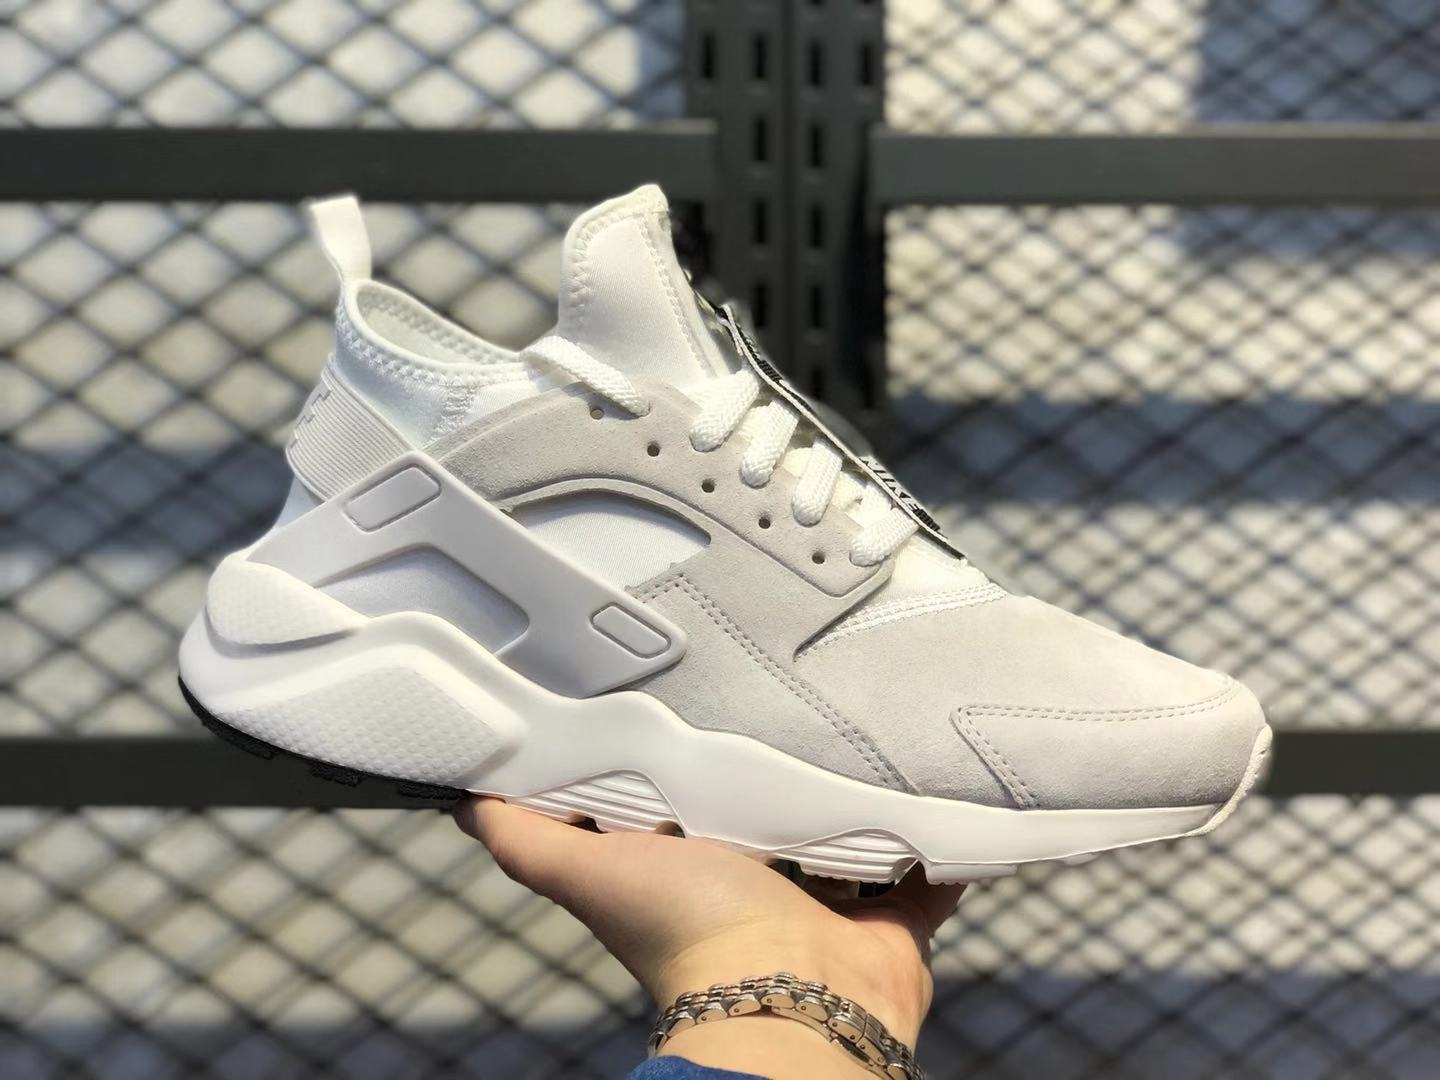 2020 Best Sell Nike Air Huarache Ultra Suede Sail/Cloud White 829669-552